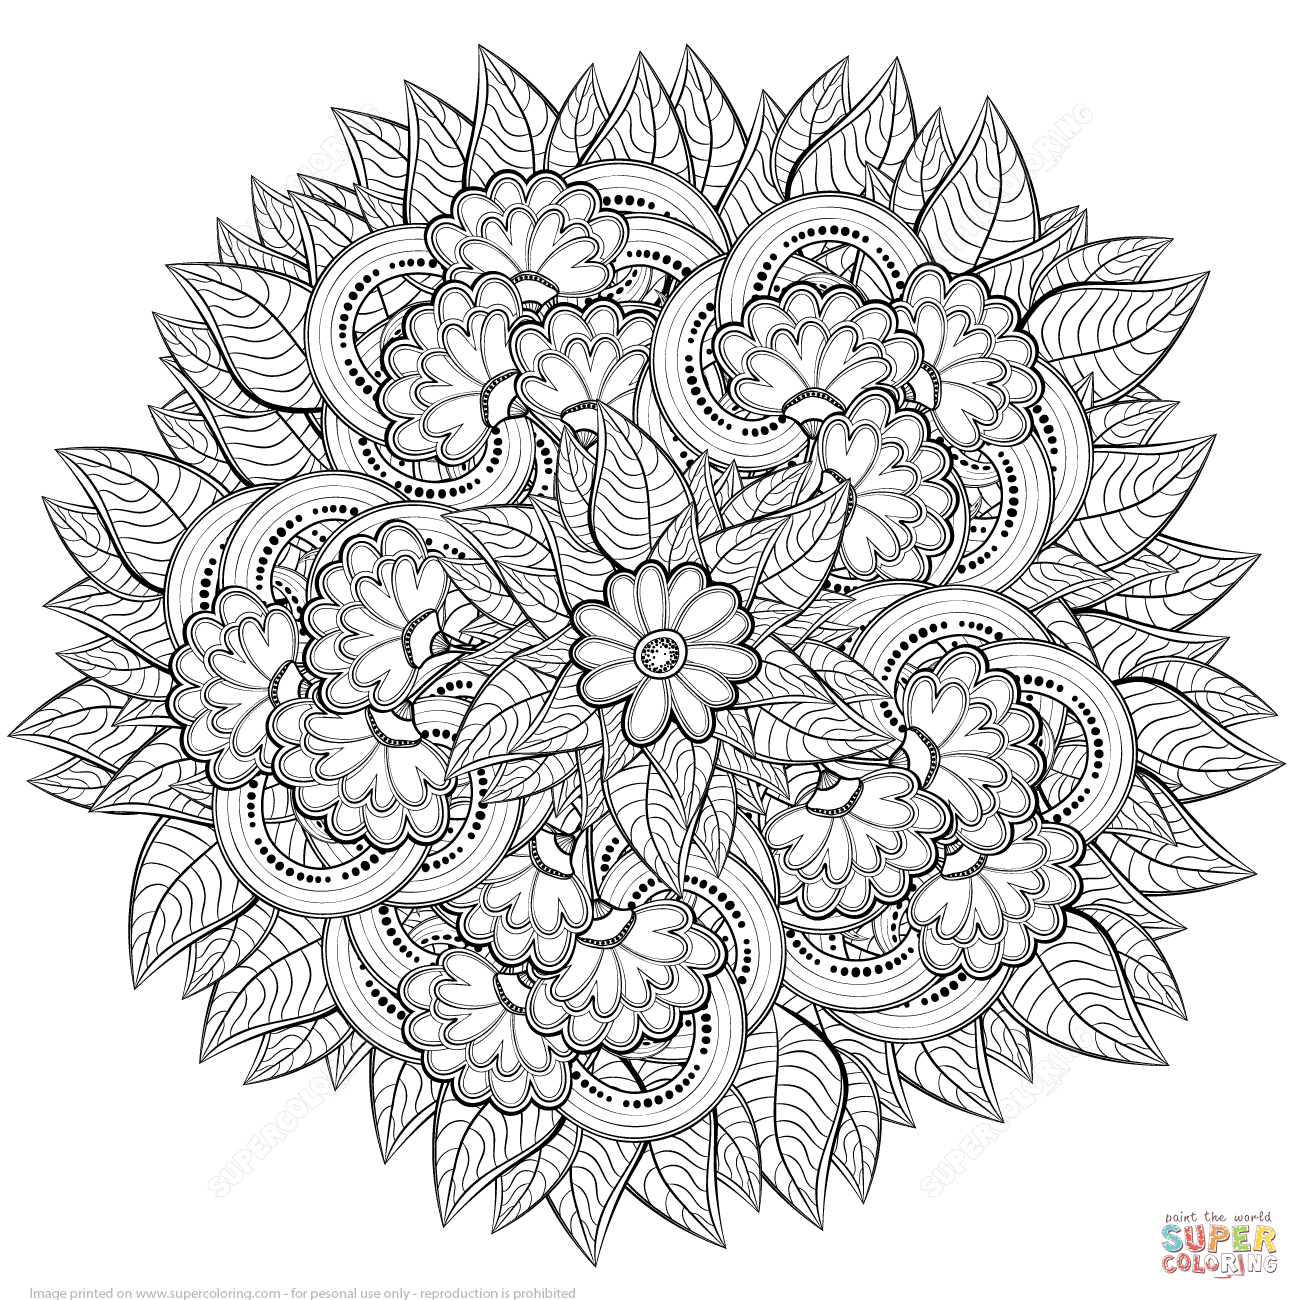 shelly beauchamp zen tangles coloring pages | Abstract Flowers Zentangle | Super Coloring | Páginas para ...